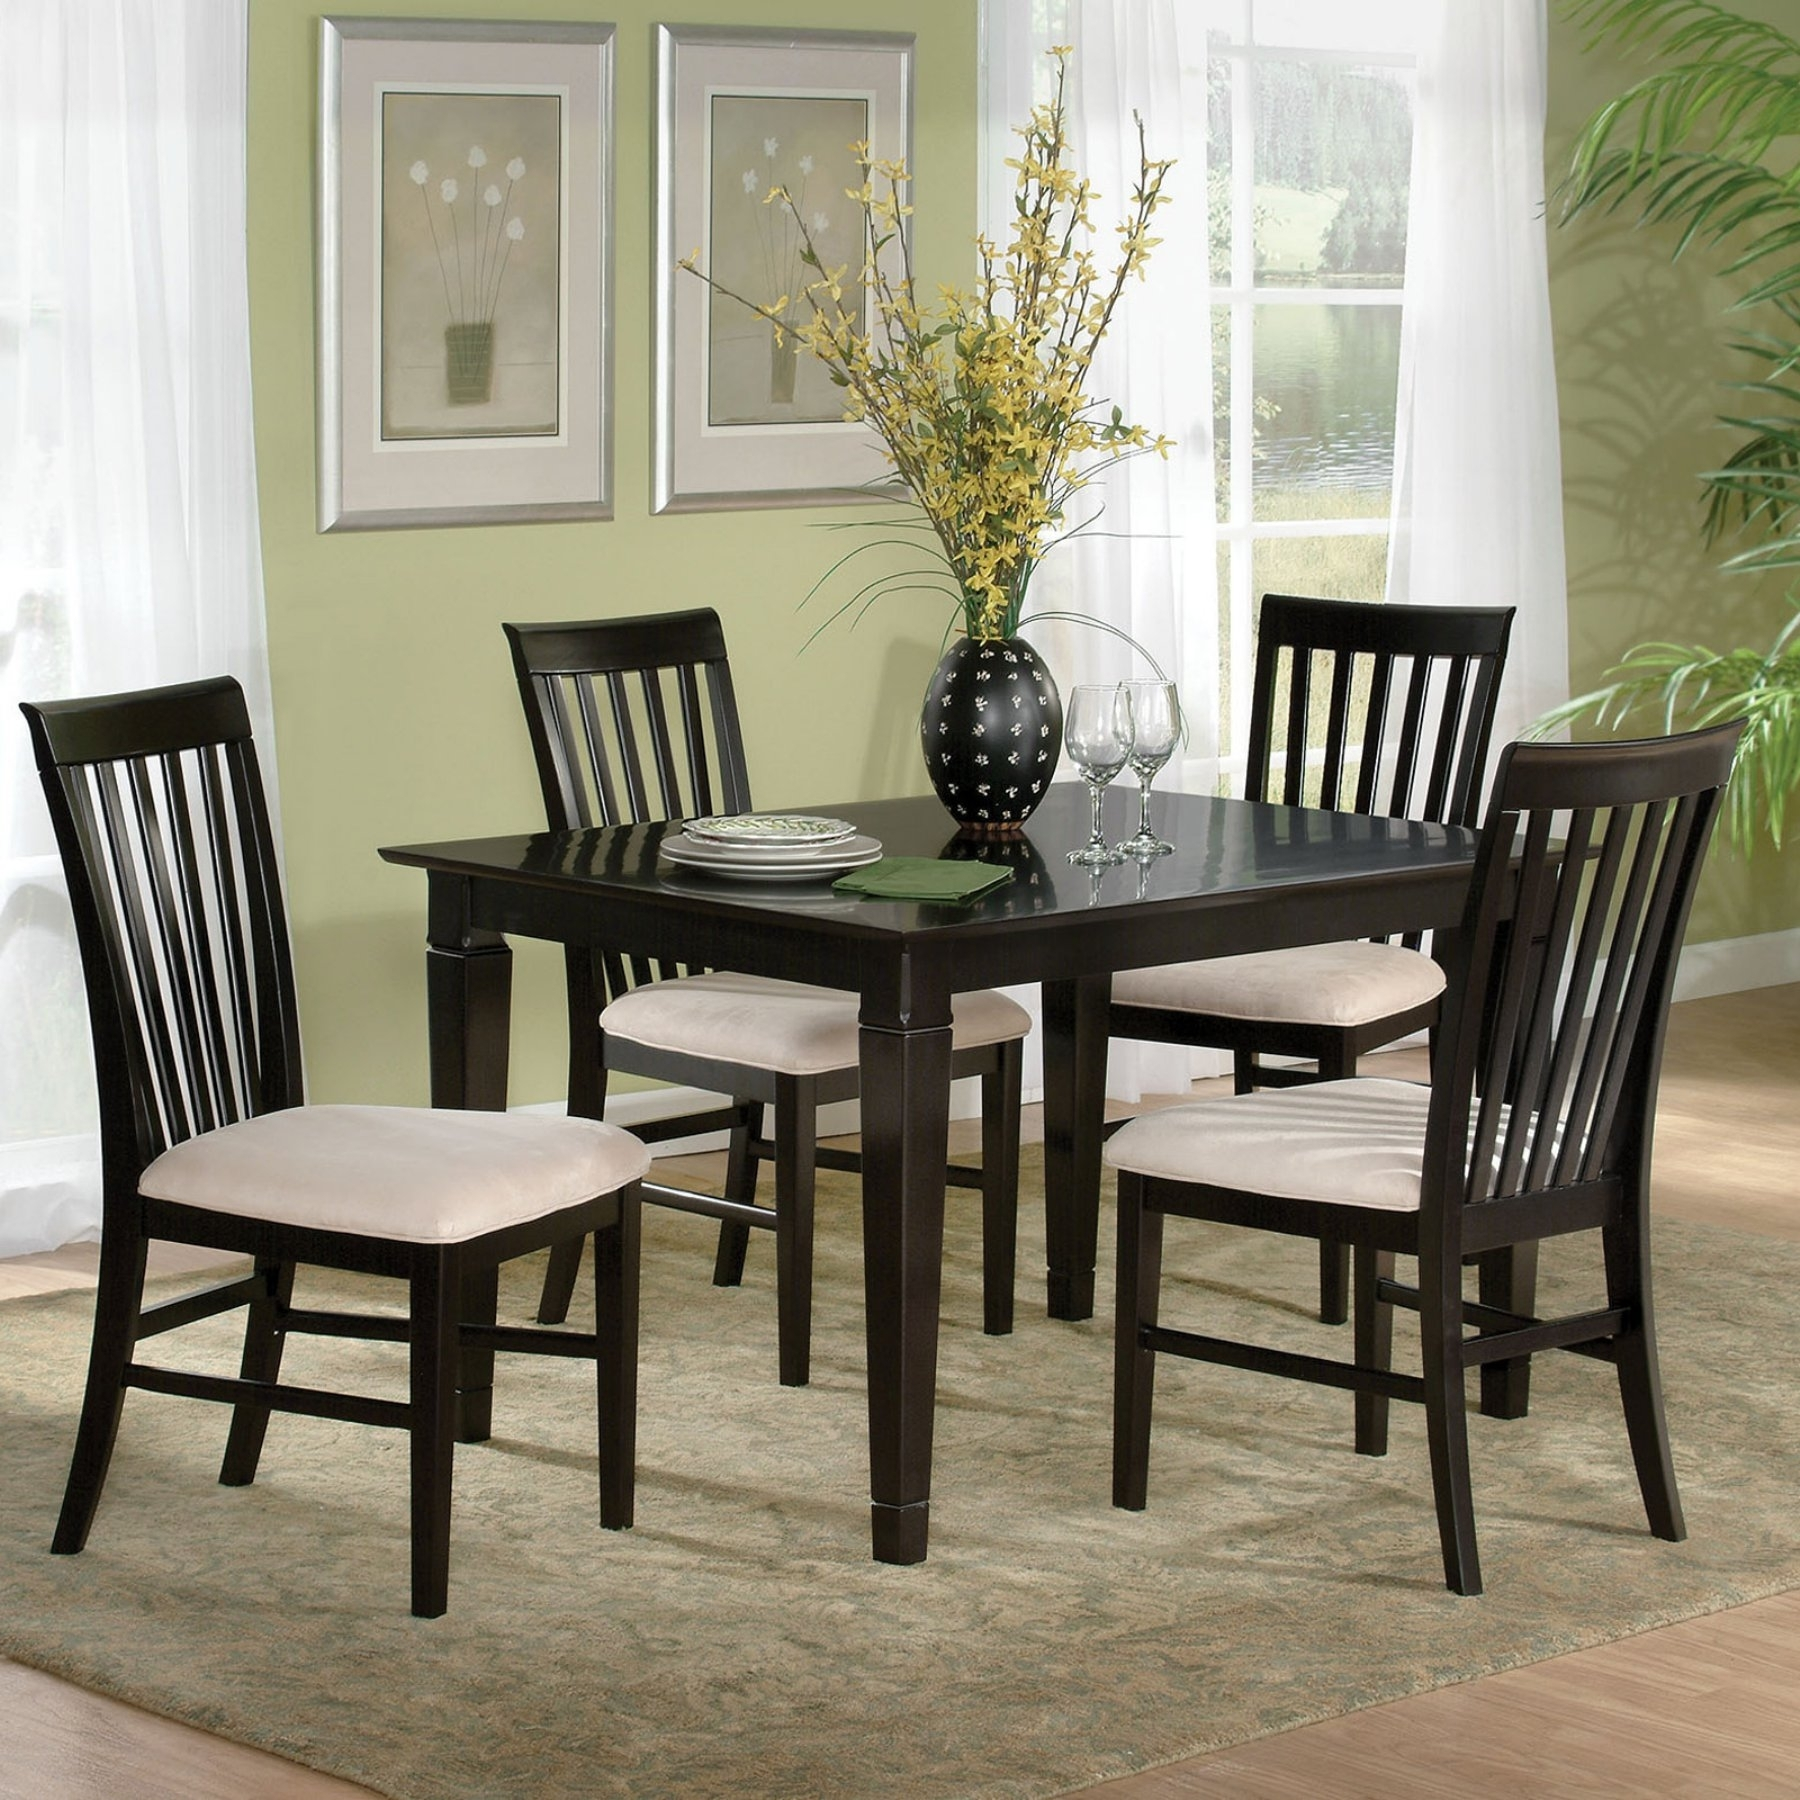 Atlantic Furniture Montego Bay 5 Piece Espresso Dining Table Set In Recent Laurent 5 Piece Round Dining Sets With Wood Chairs (Image 3 of 20)